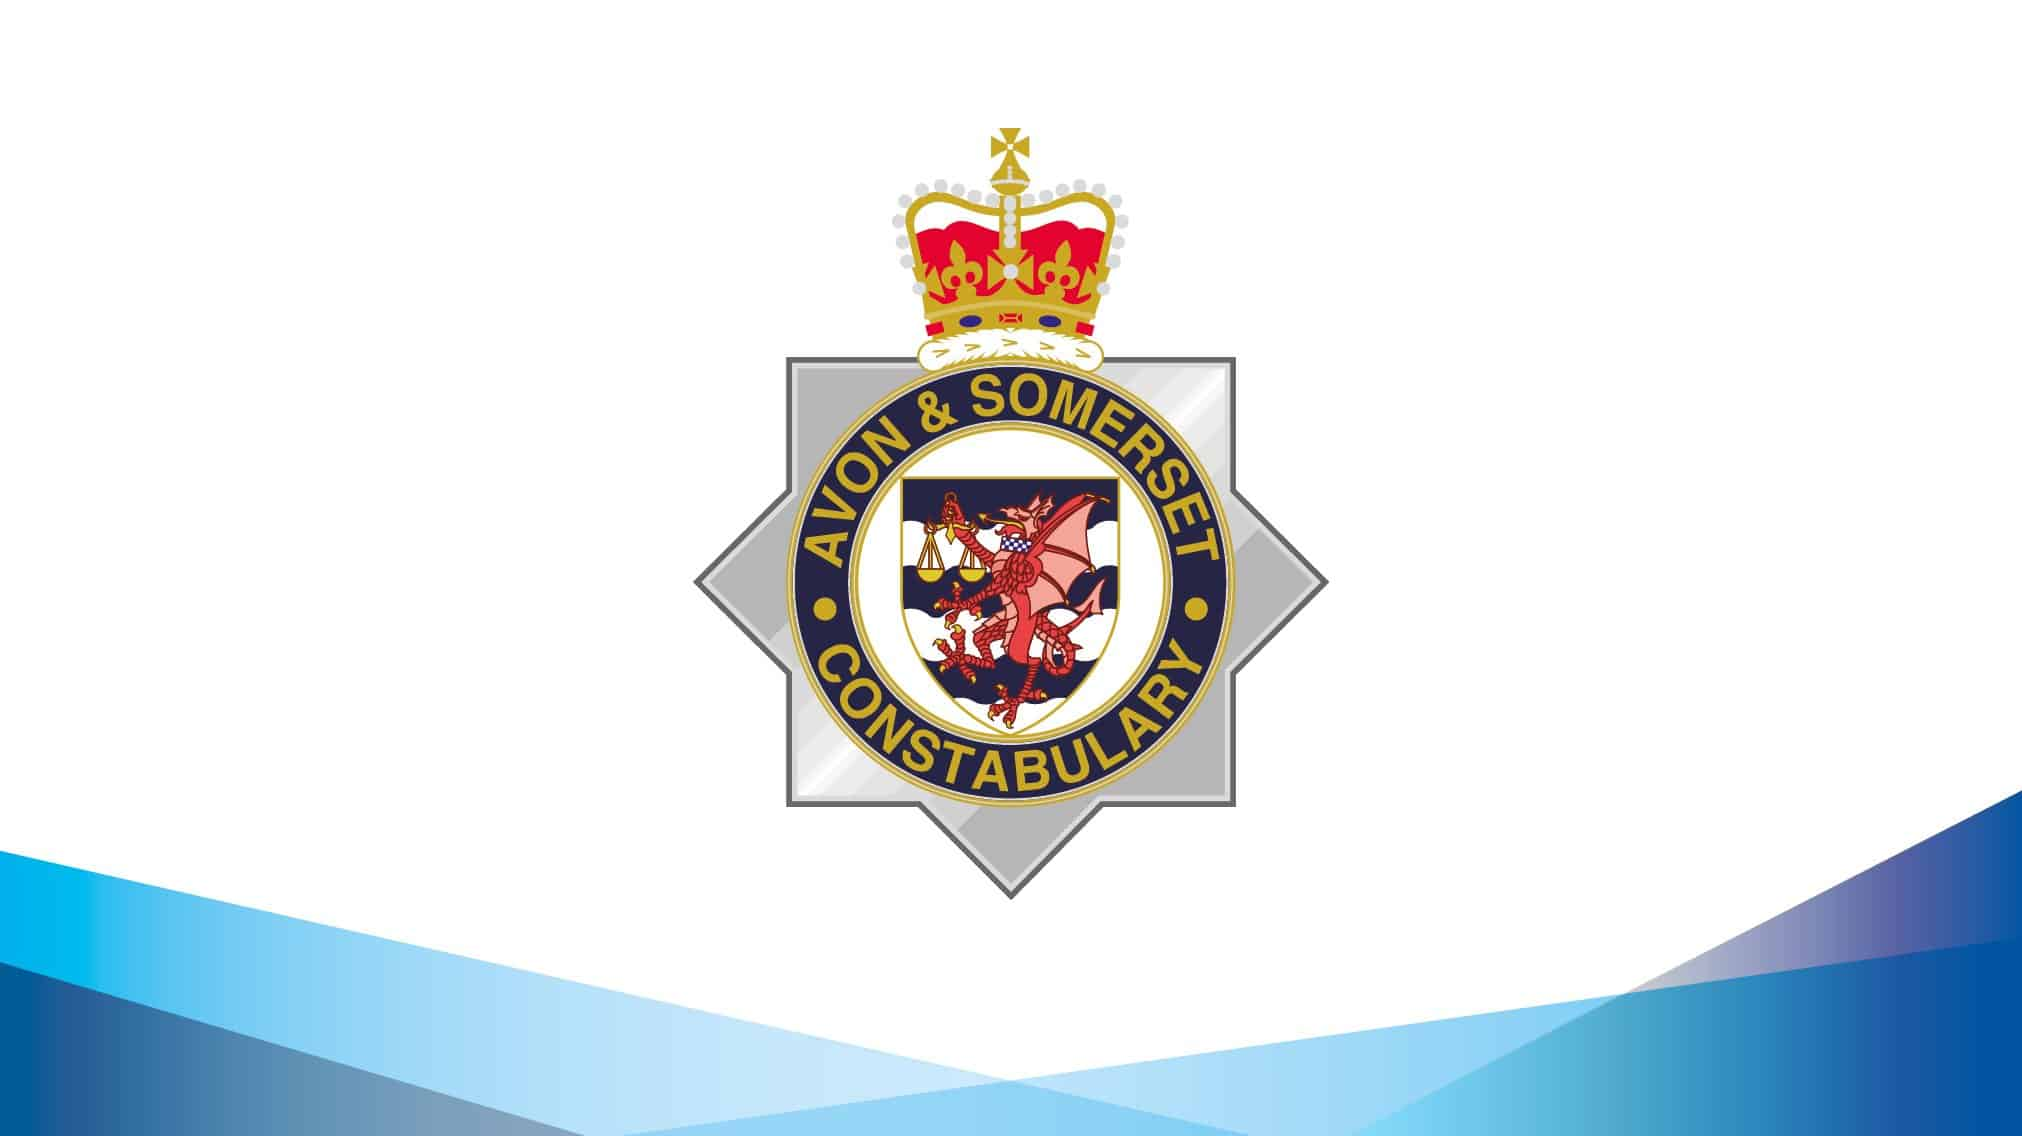 Statement following fatal collision in Taunton